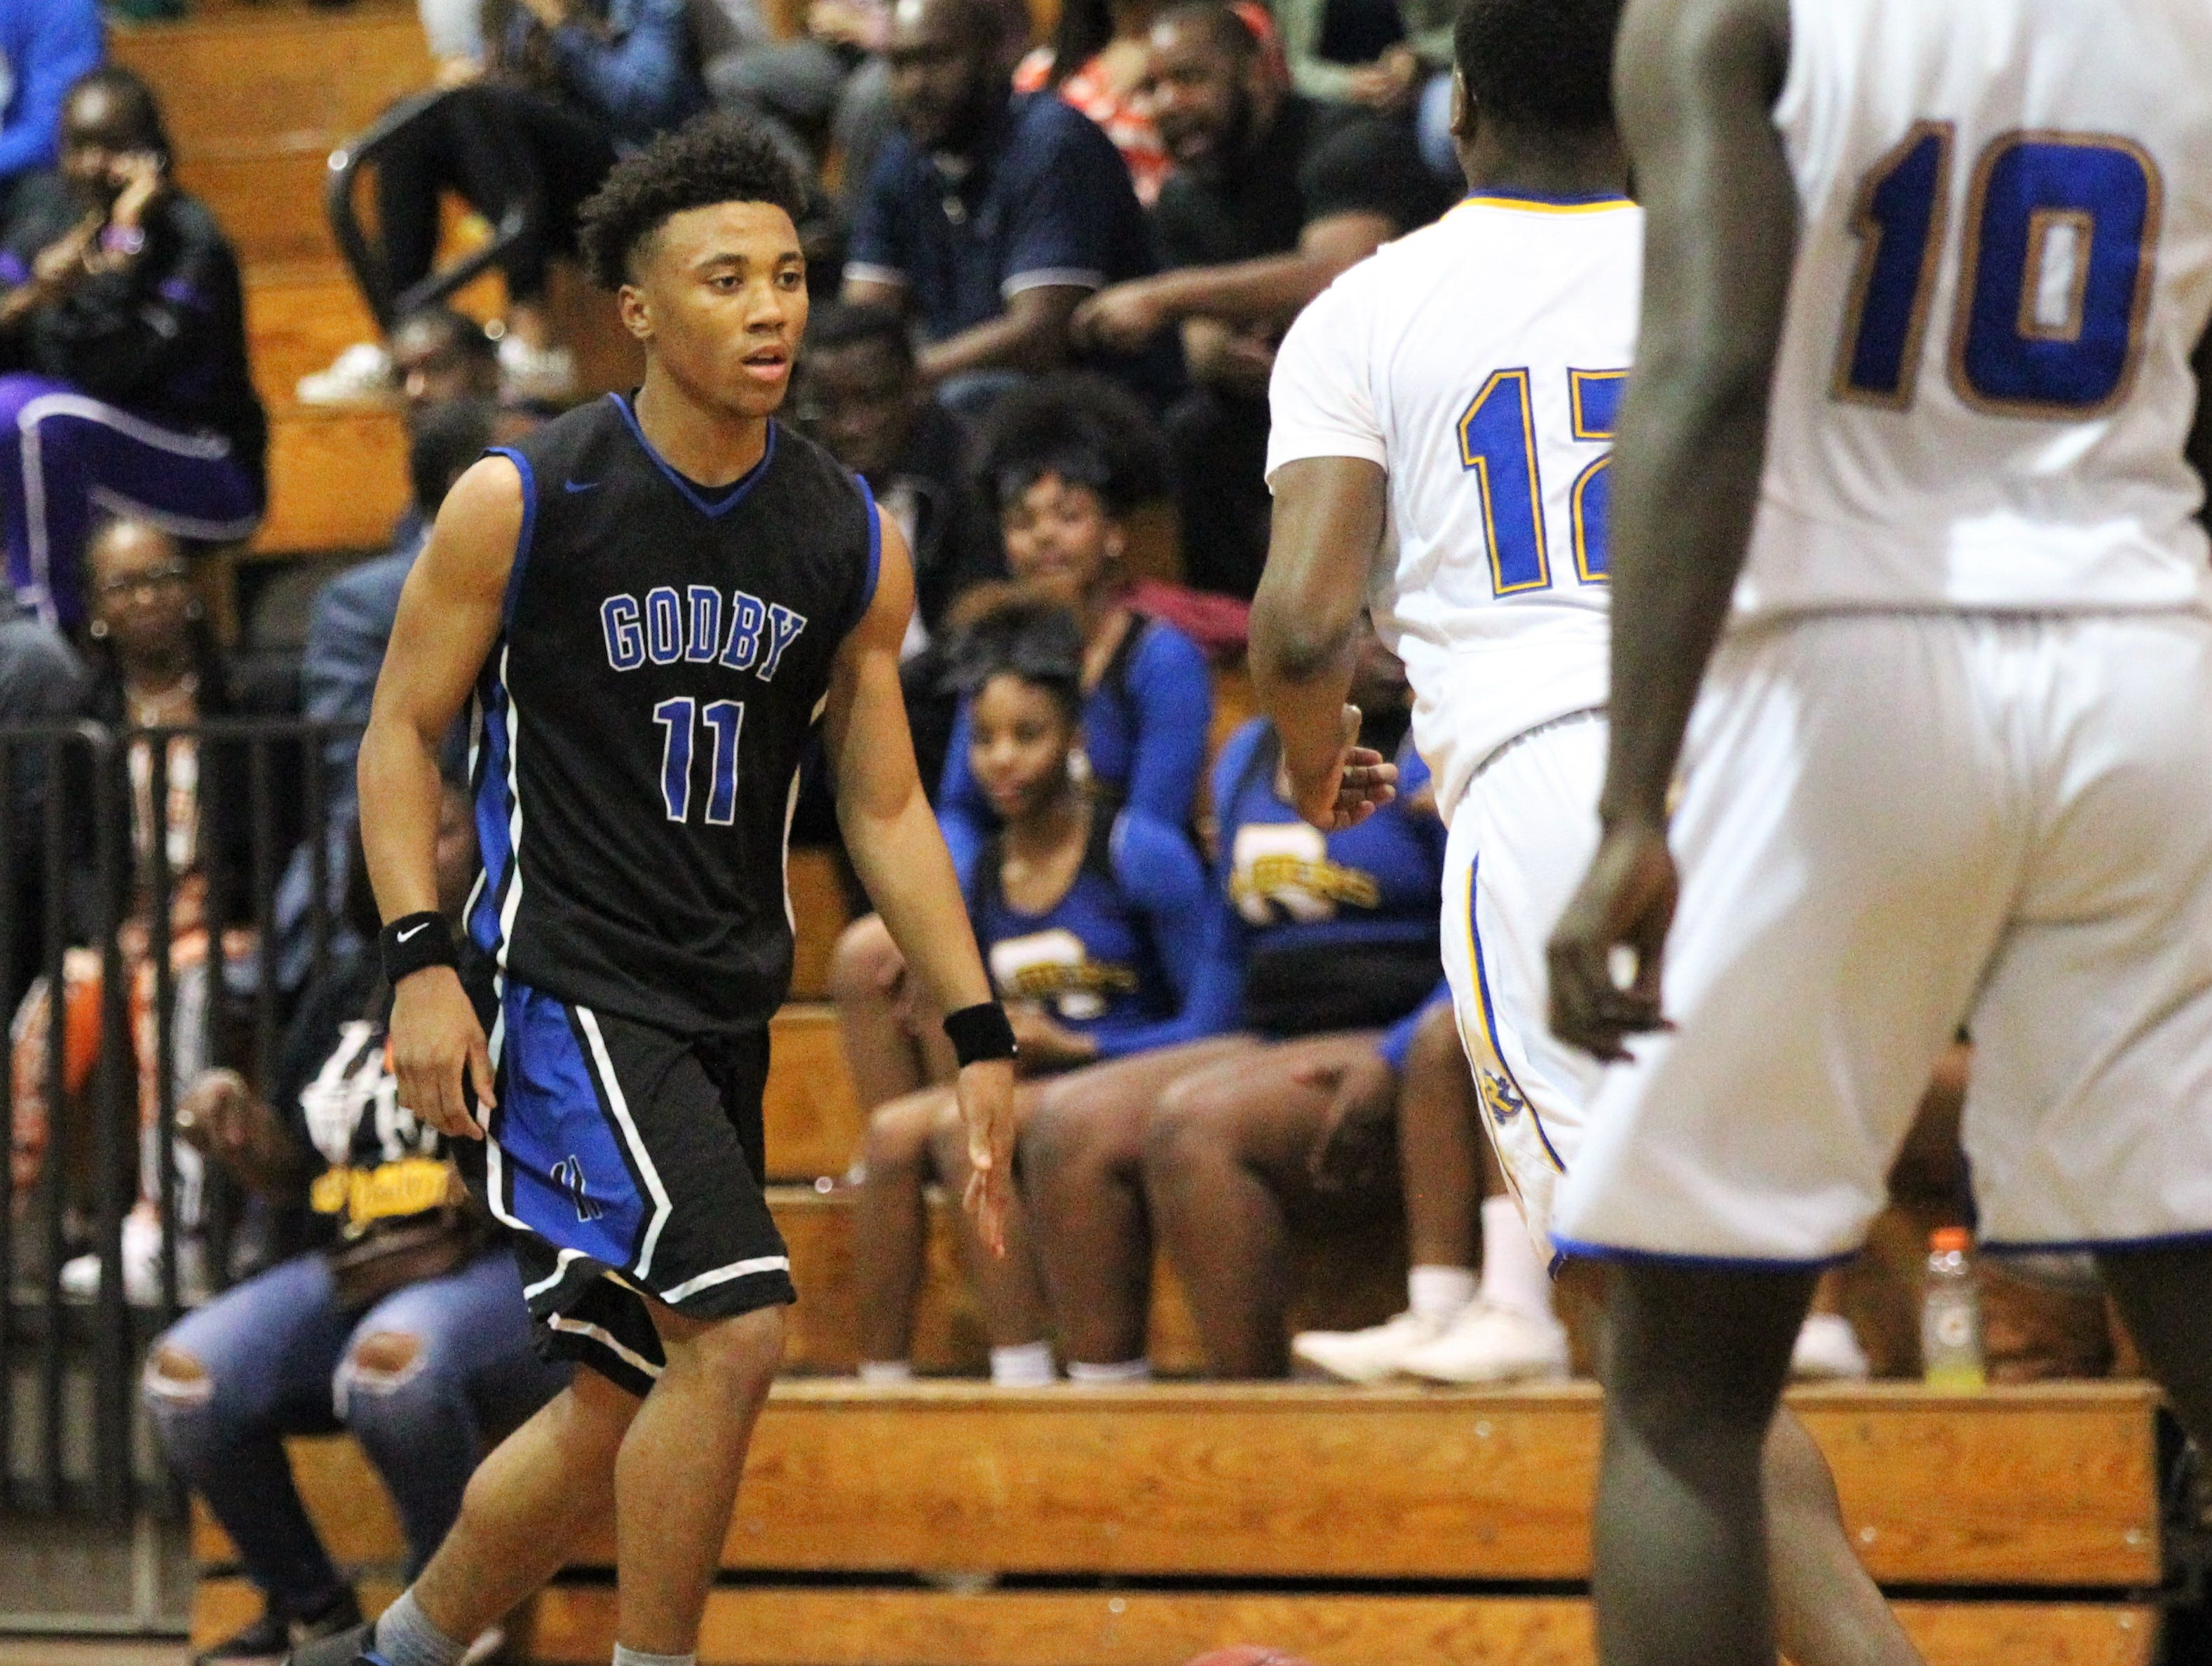 Godby's Jalil Webster brings the ball up the court as Rickards' boys basketball team beat Godby 58-47 during a District 2-6A championship game at Chiles on Feb. 15, 2019.